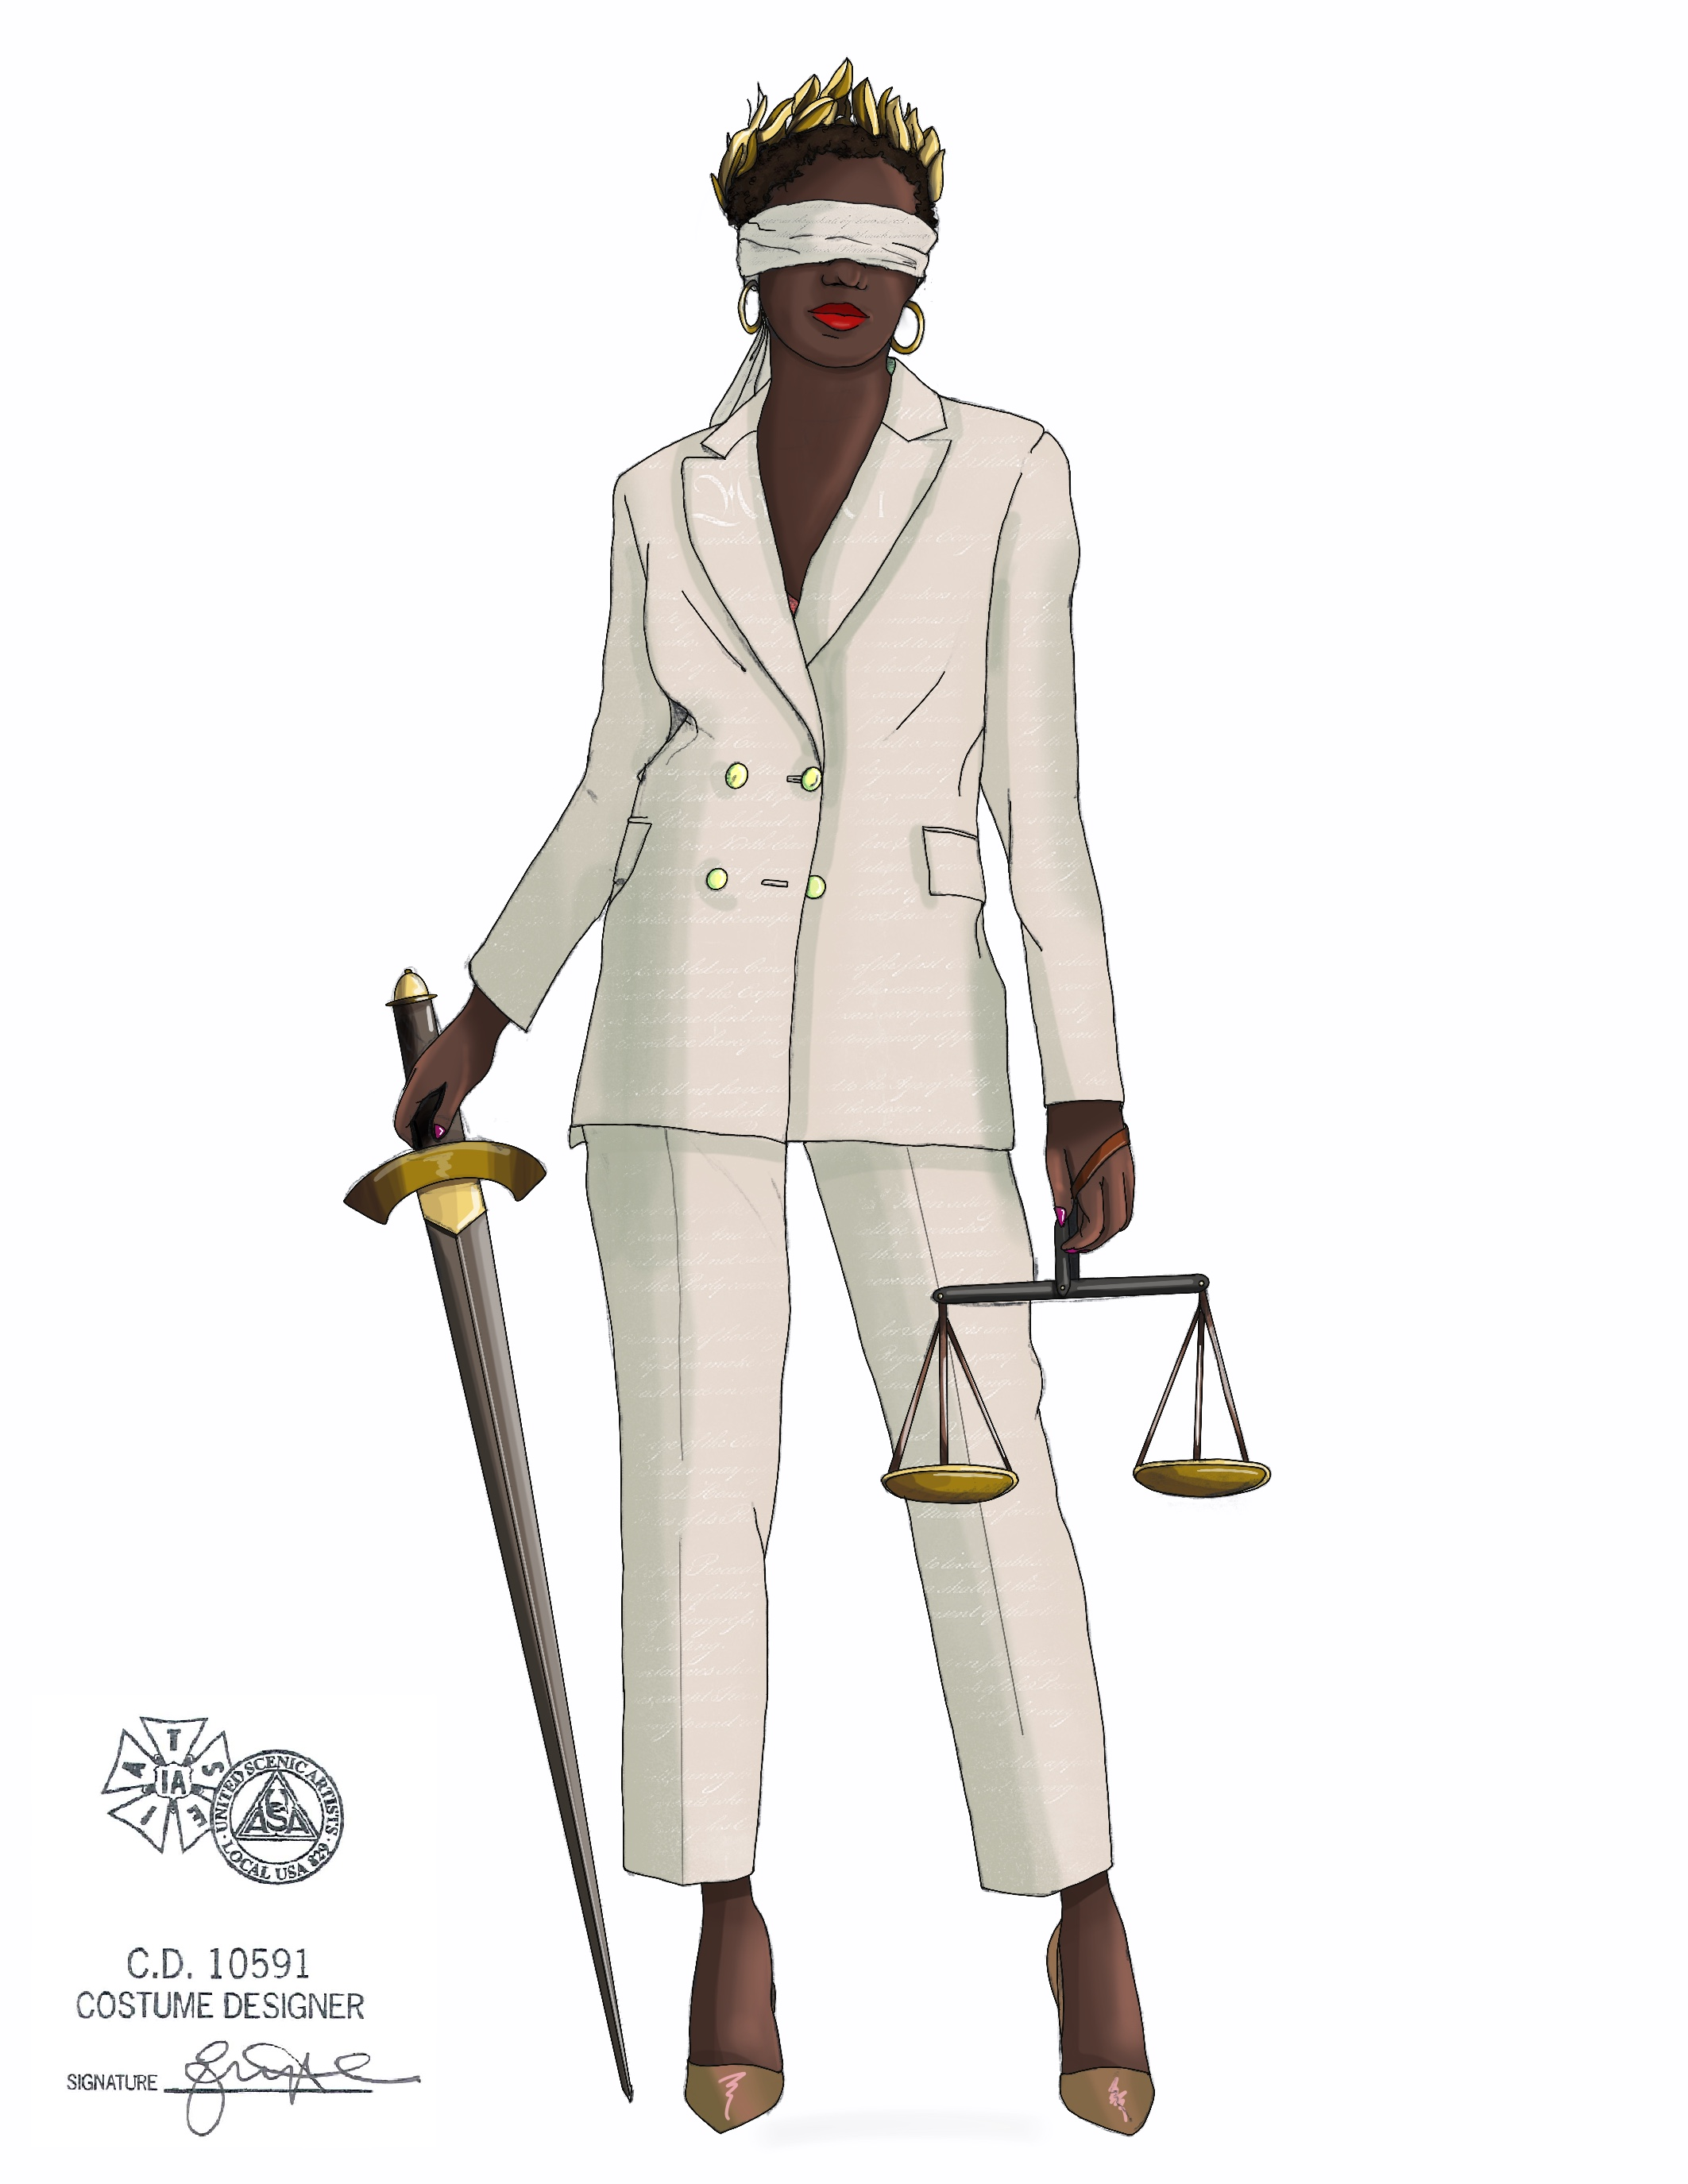 Commissioned Artwork: Lady Justice